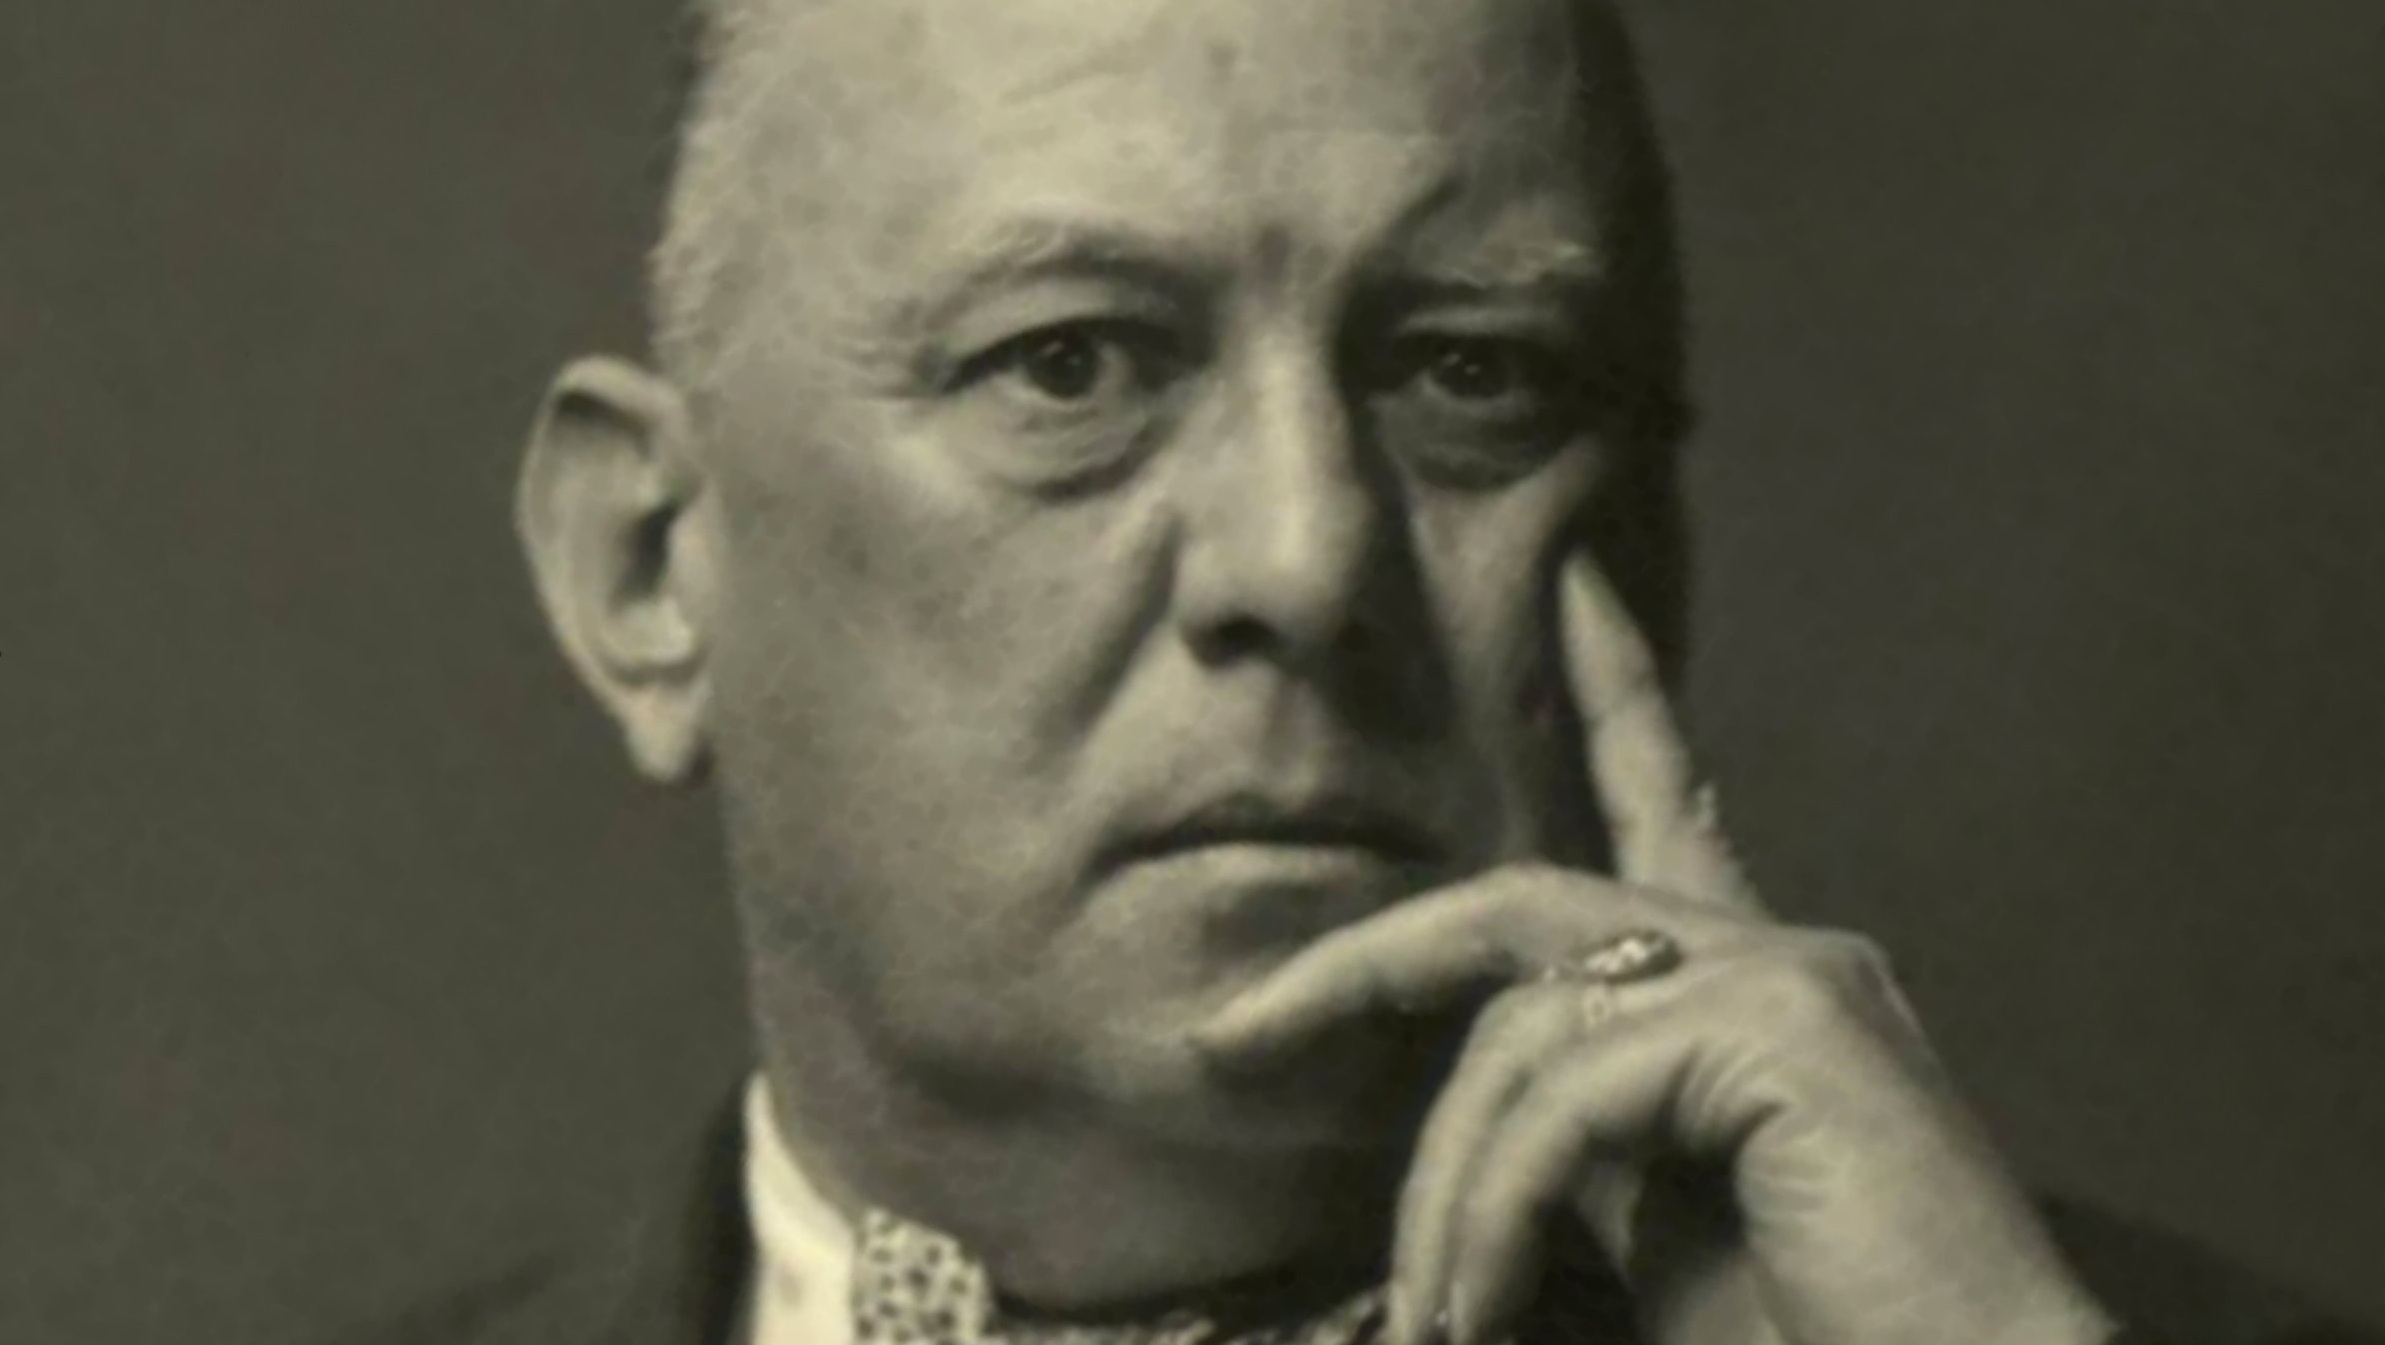 a biography of aleister crowley a writer and a poet and the head of the religion of wicca